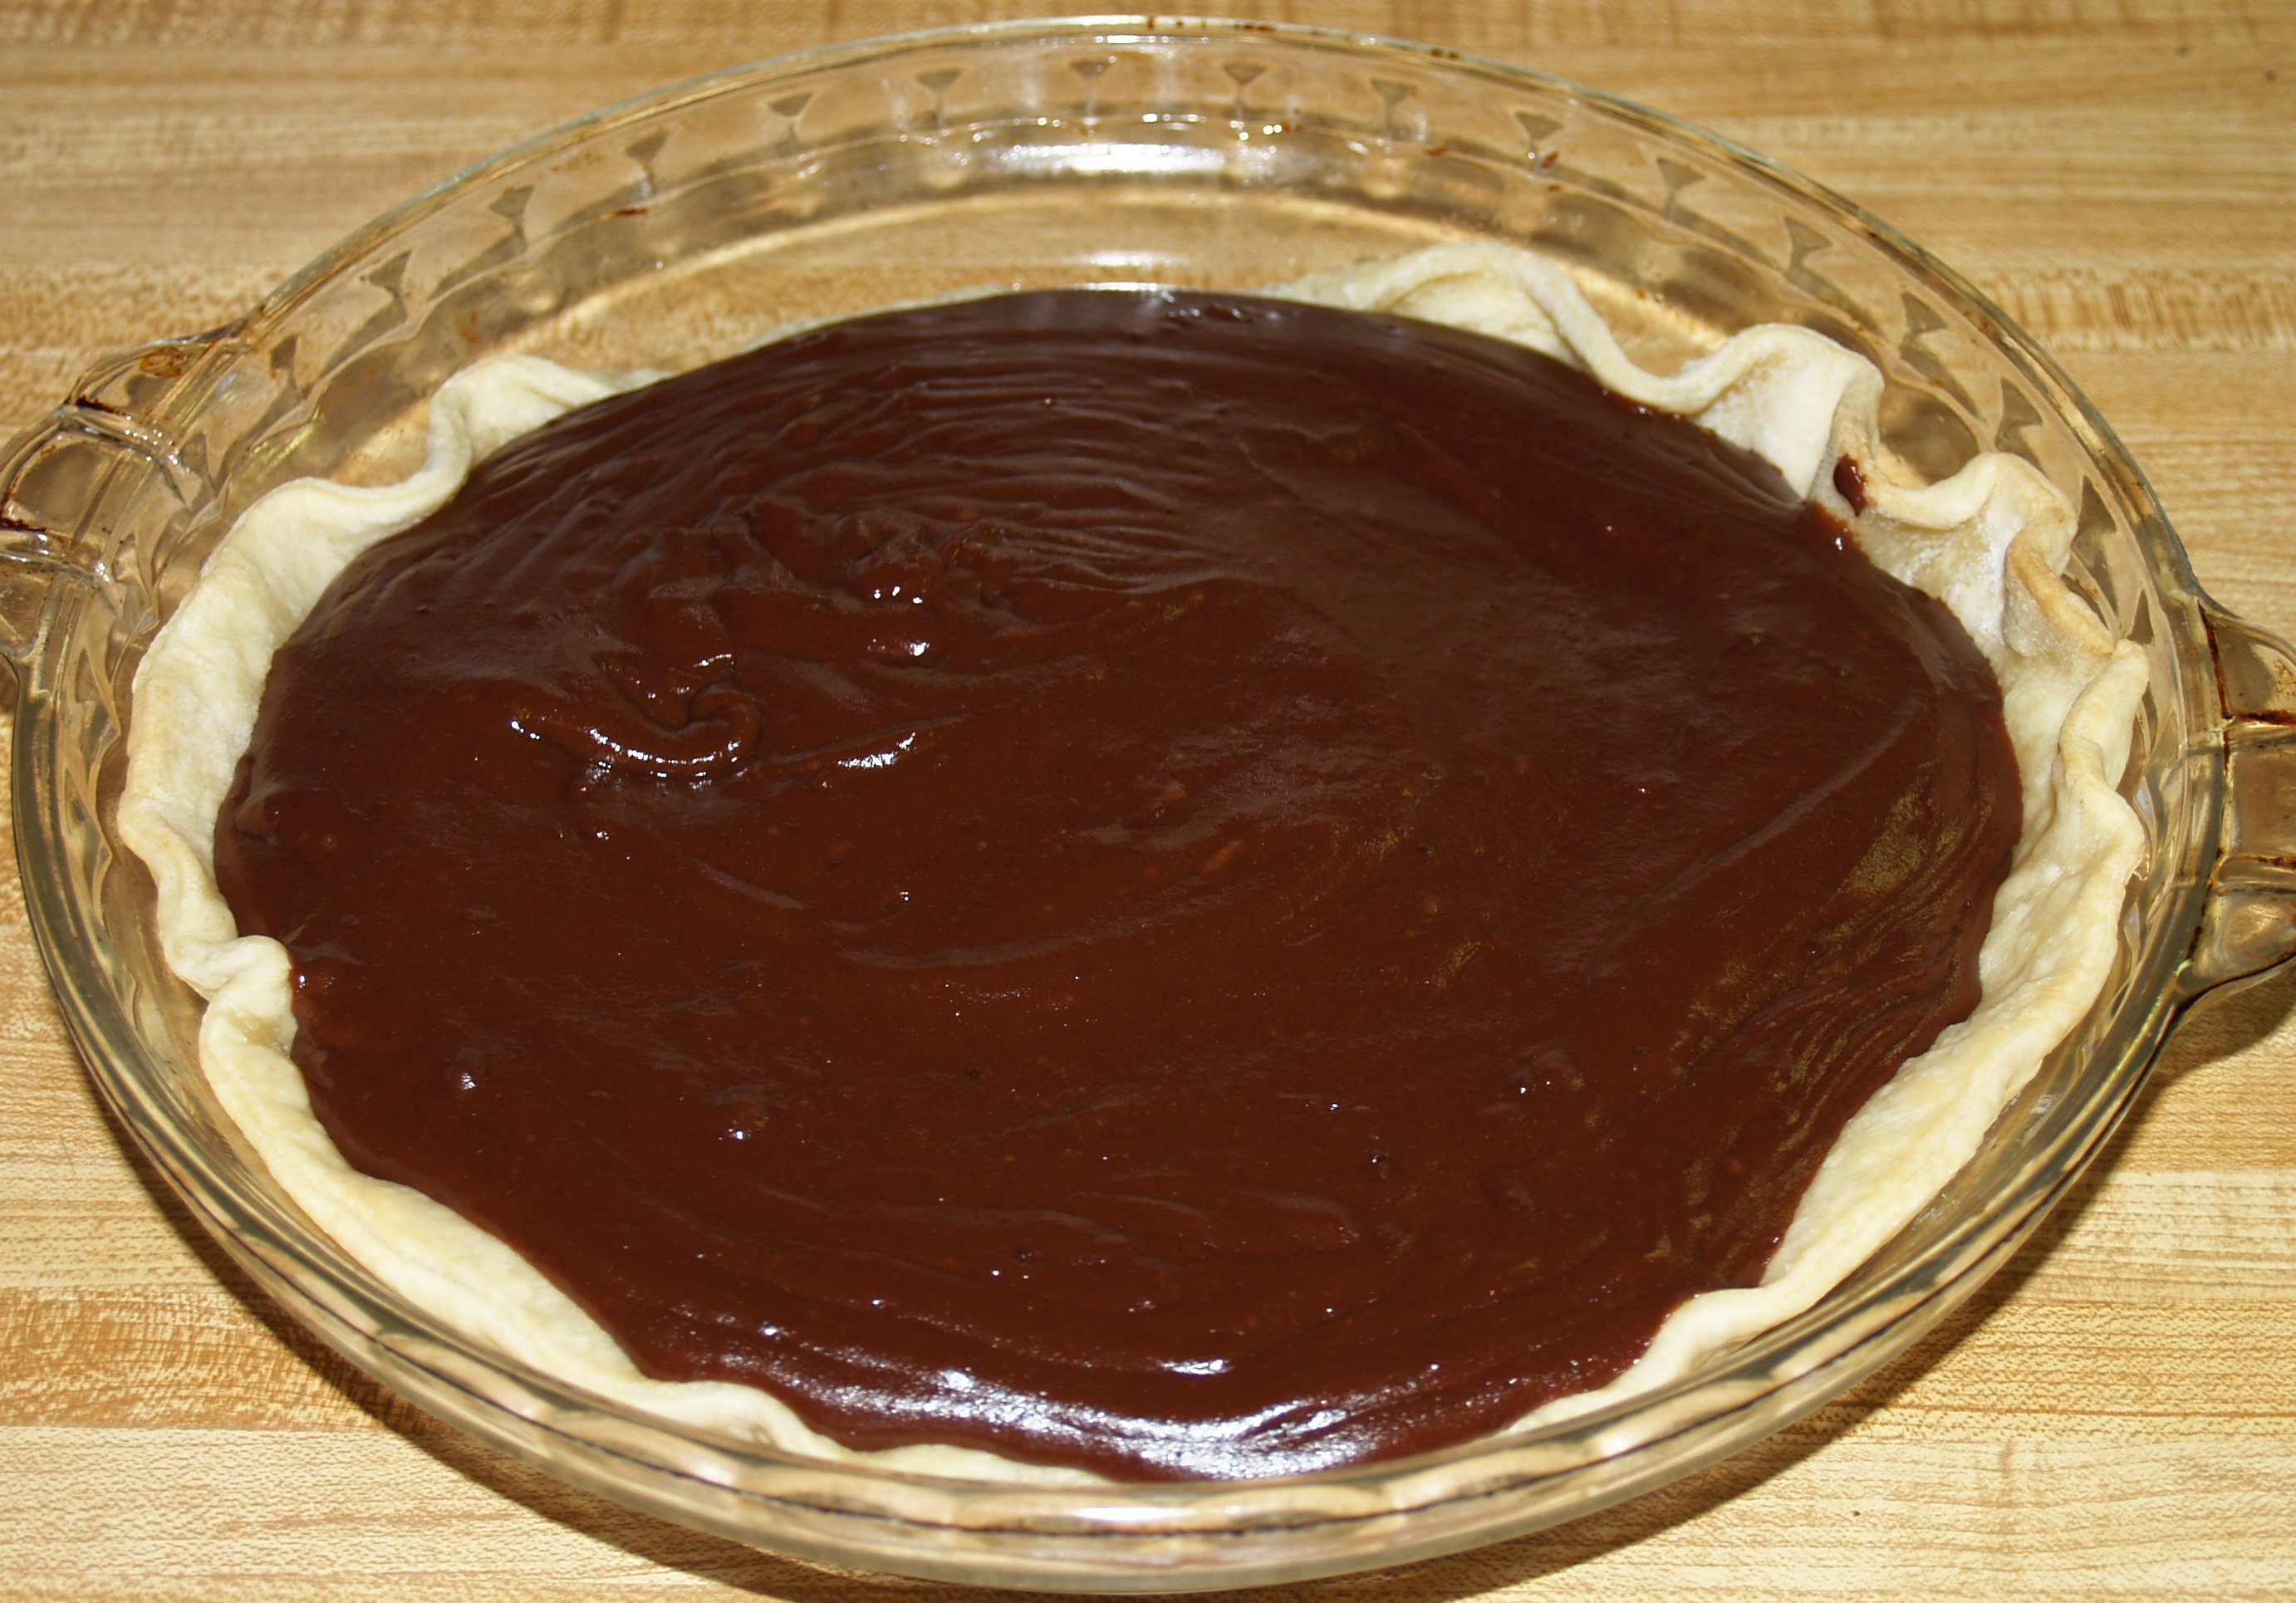 Chocolate Pie from Kelli's Kitchen